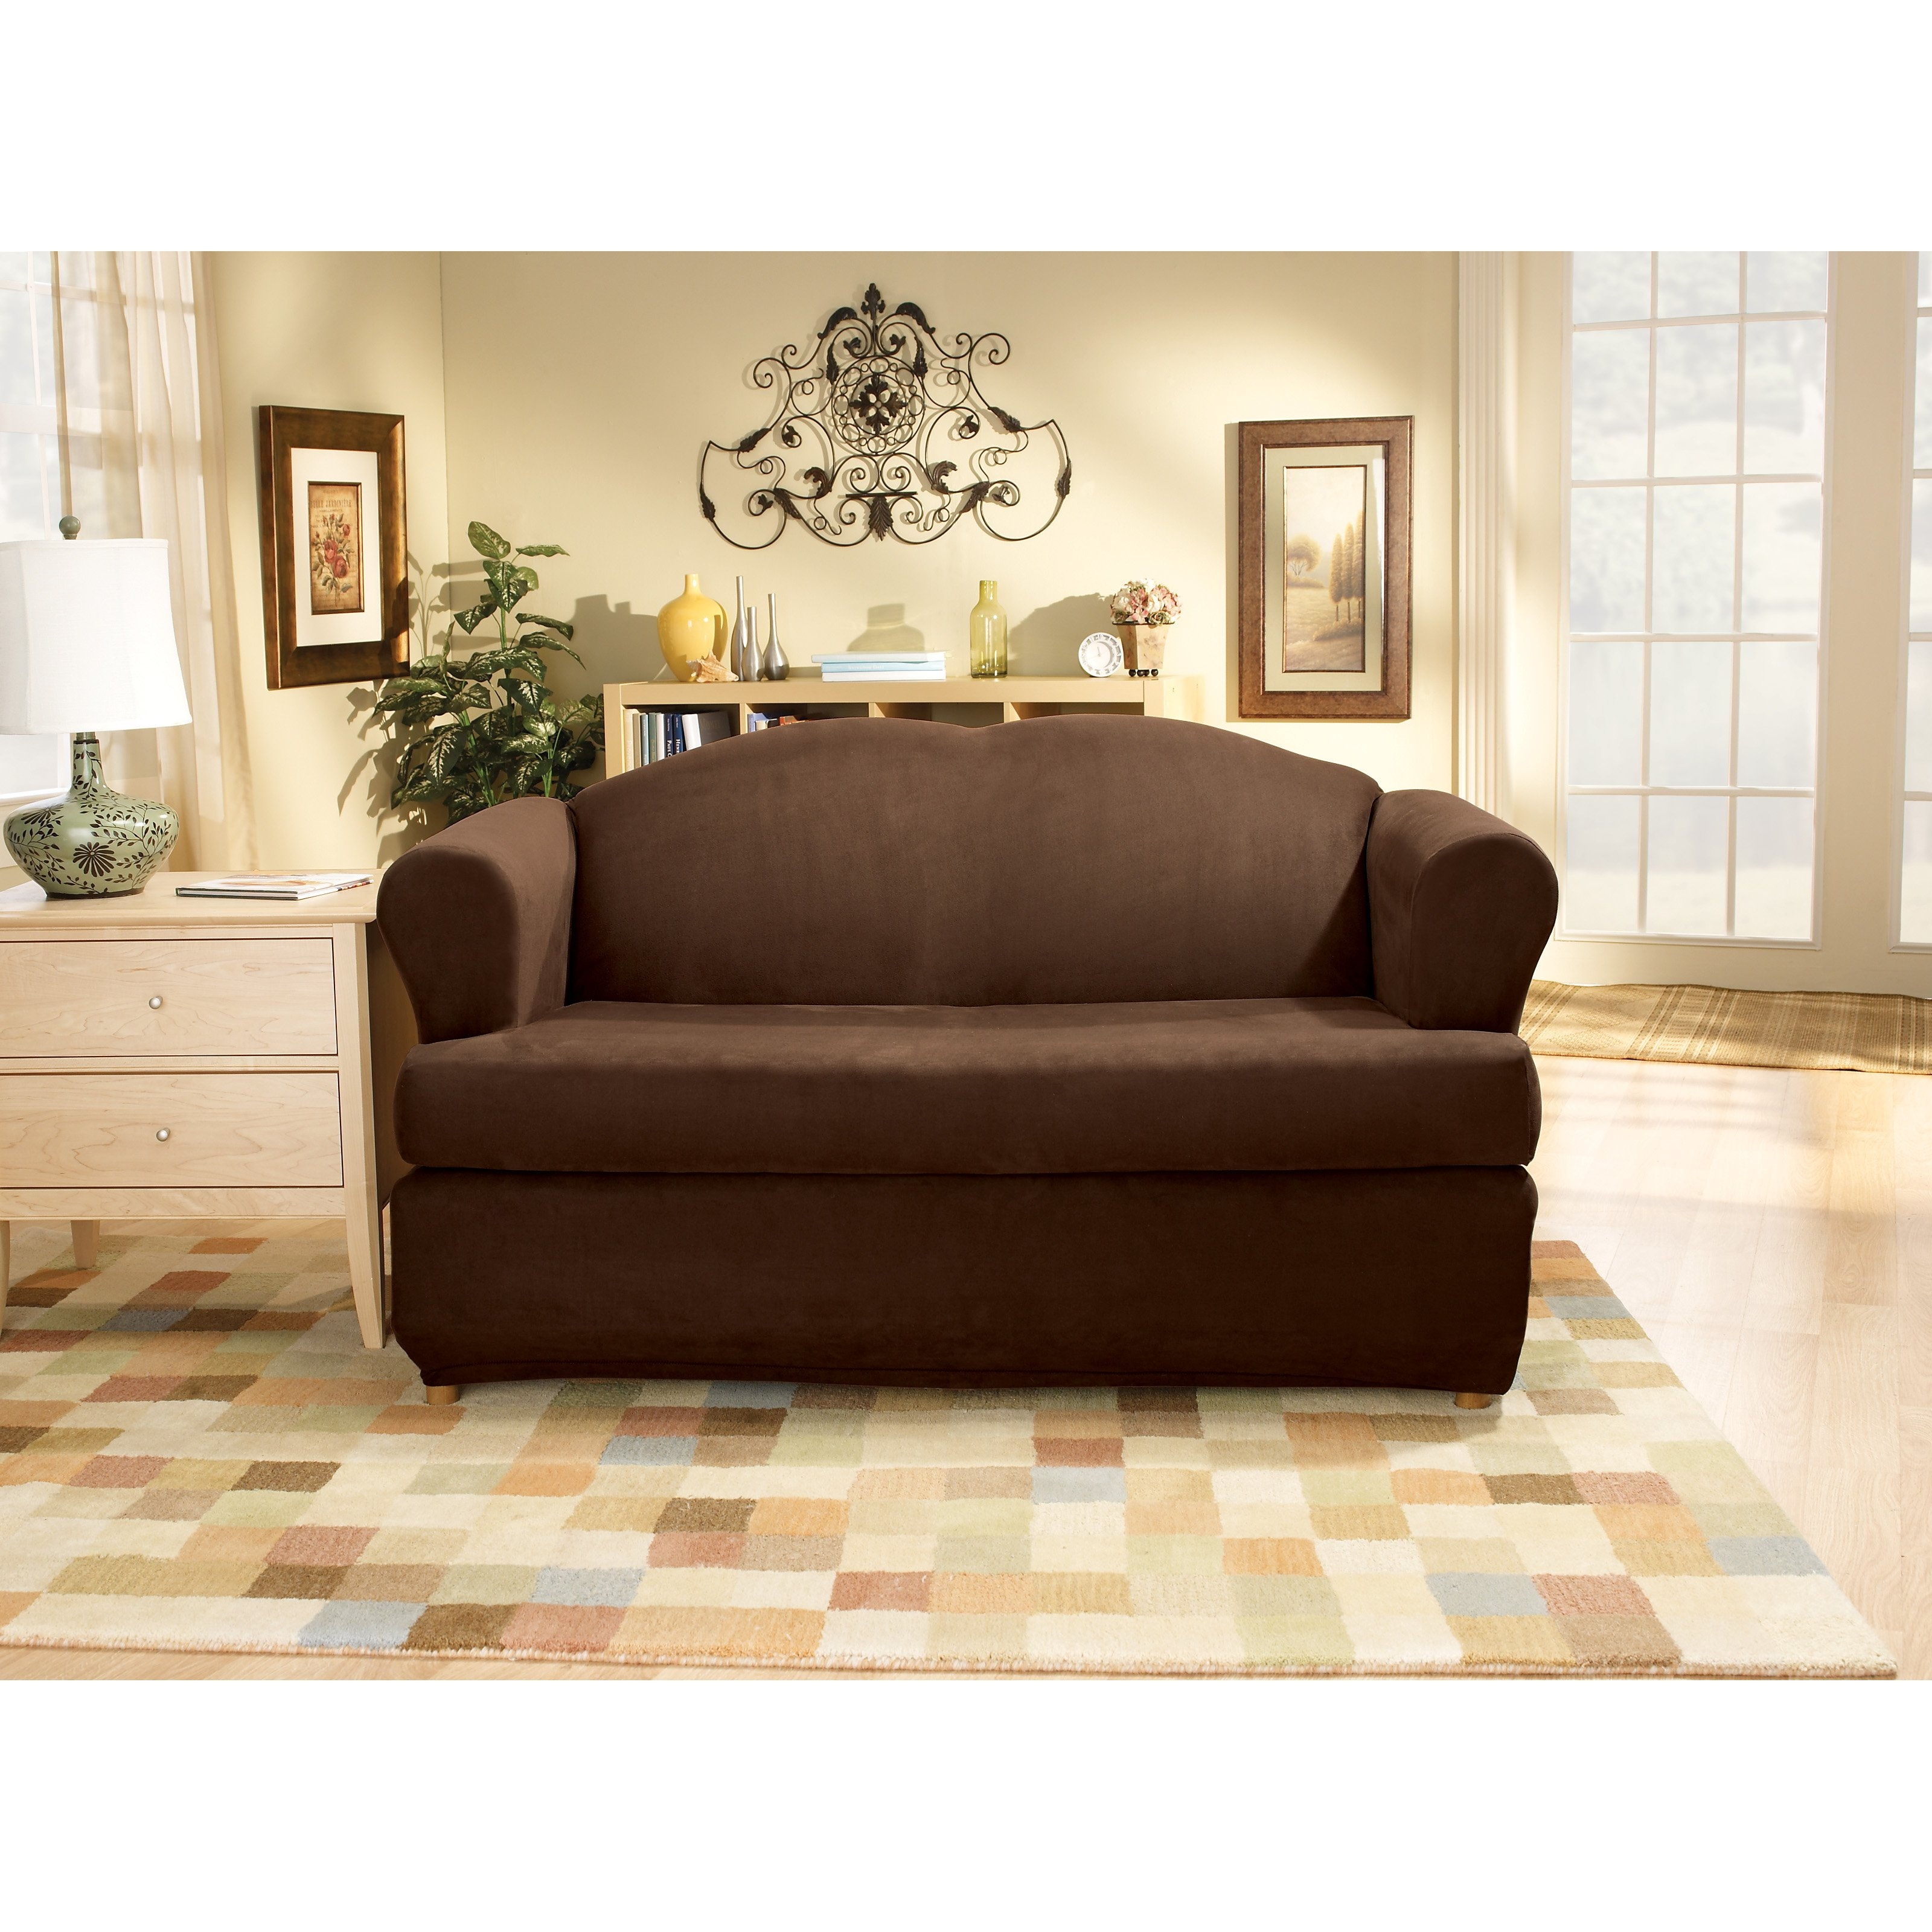 3 Piece Sectional Sofa Slipcovers Furniture Outfit Your